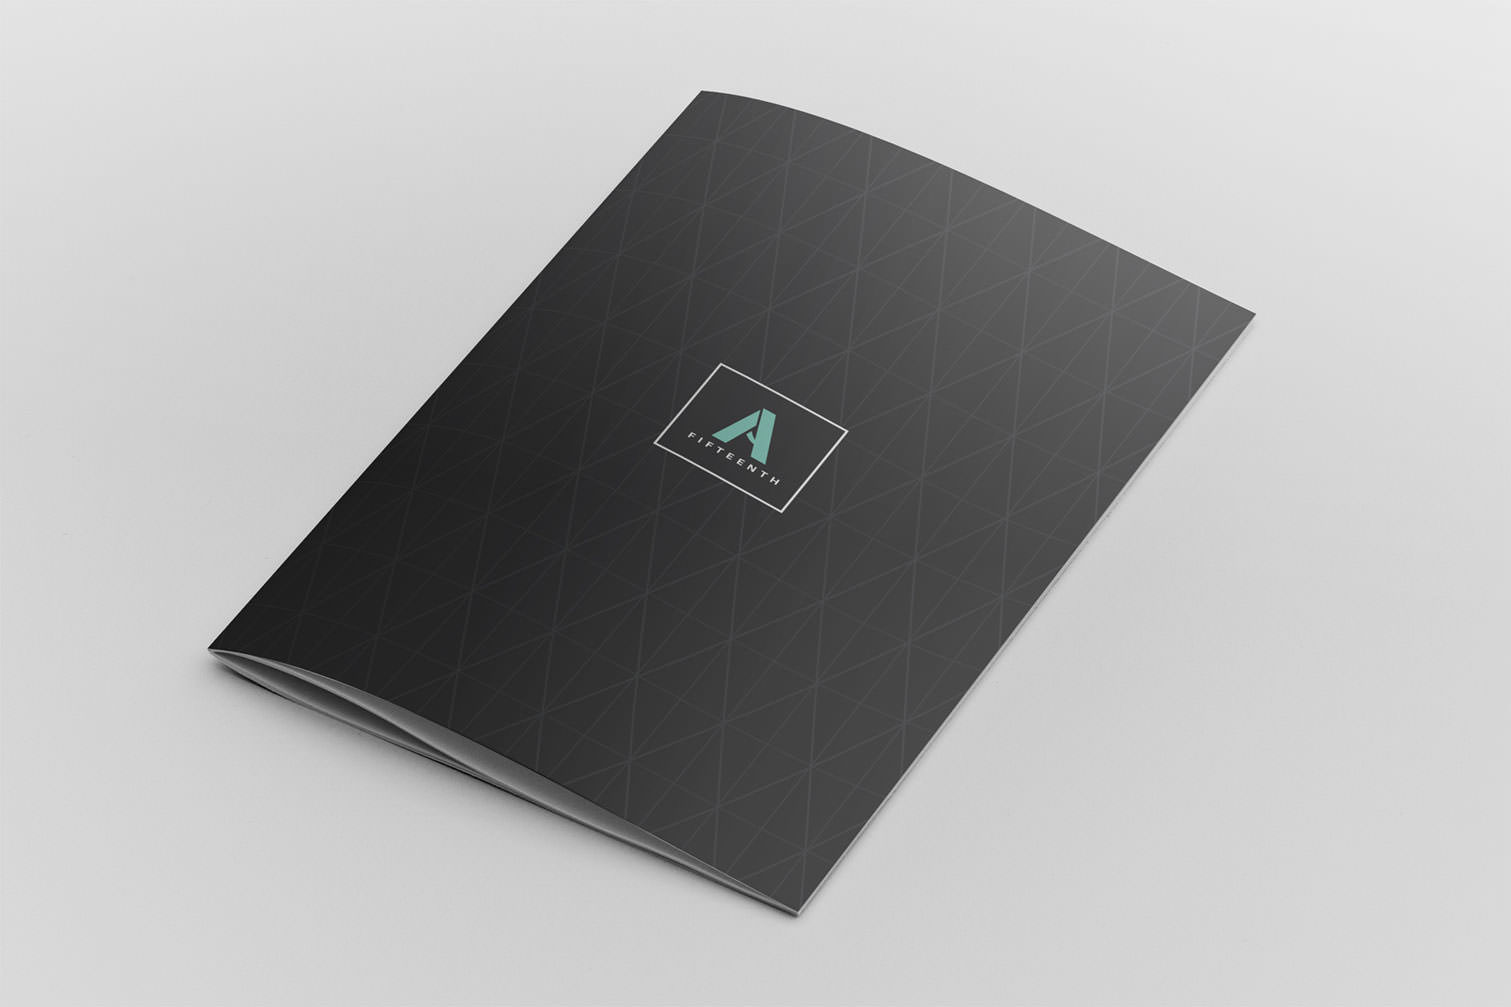 King Design Avenir Brochure1